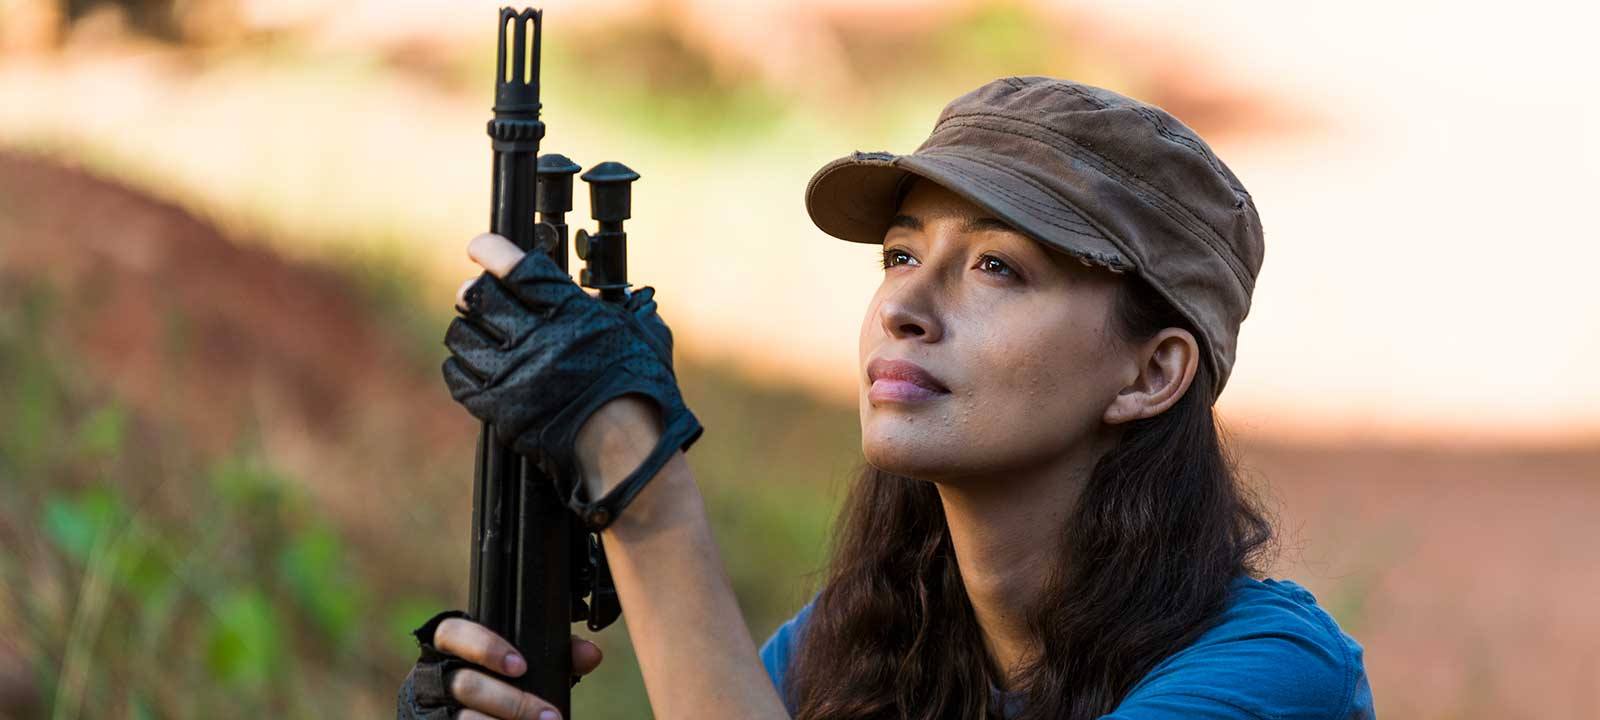 the-walking-dead-episode-714-rosita-serratos-800×600-interview